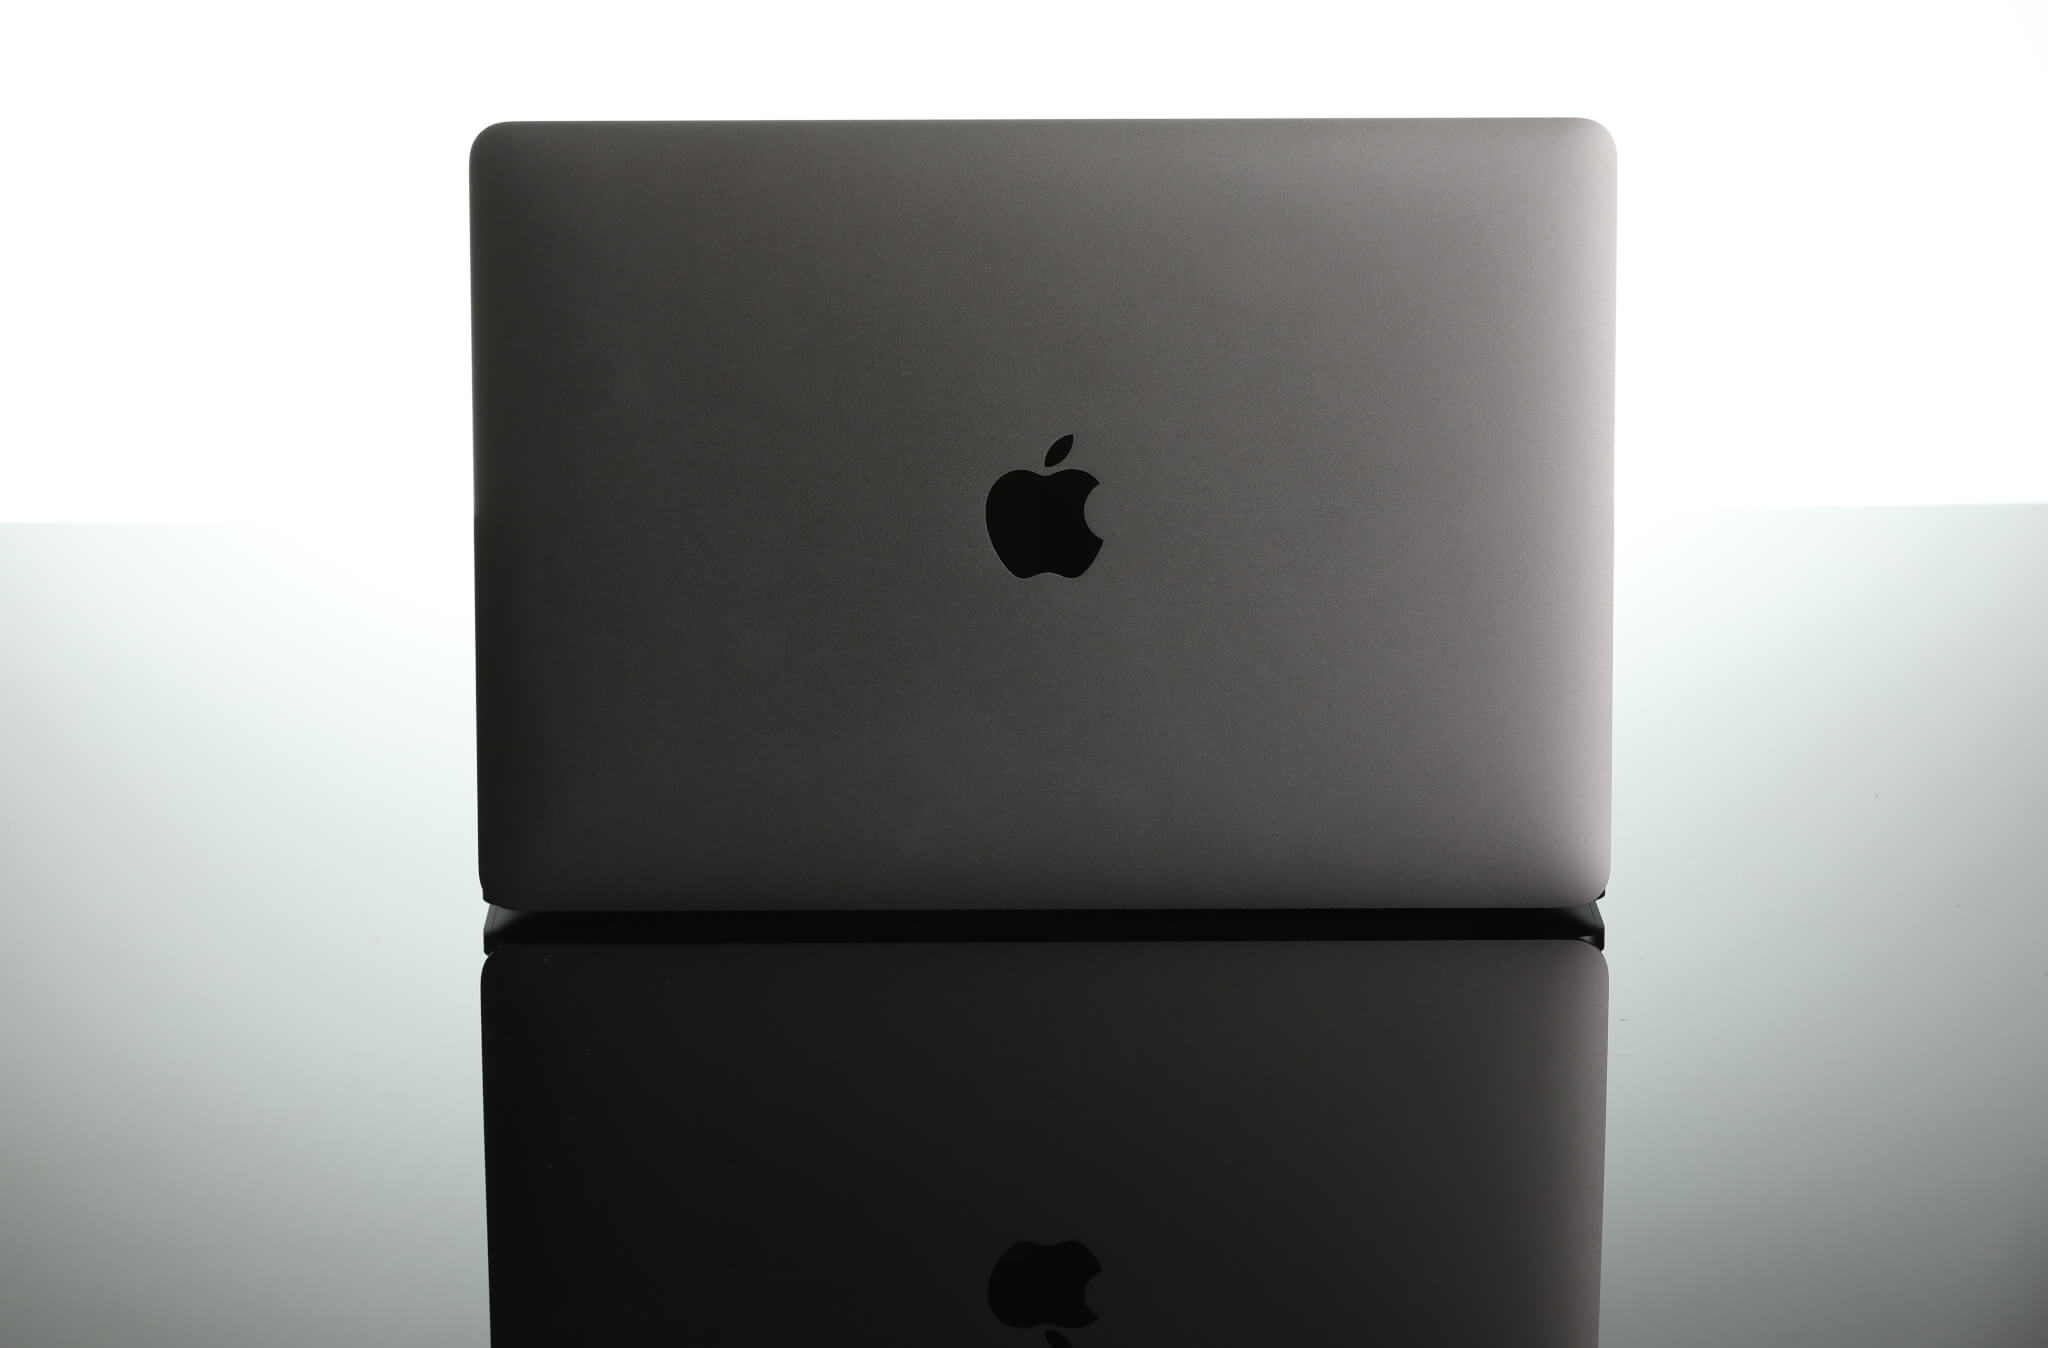 The back of the 2016 13-inch MacBook Pro in space gray.